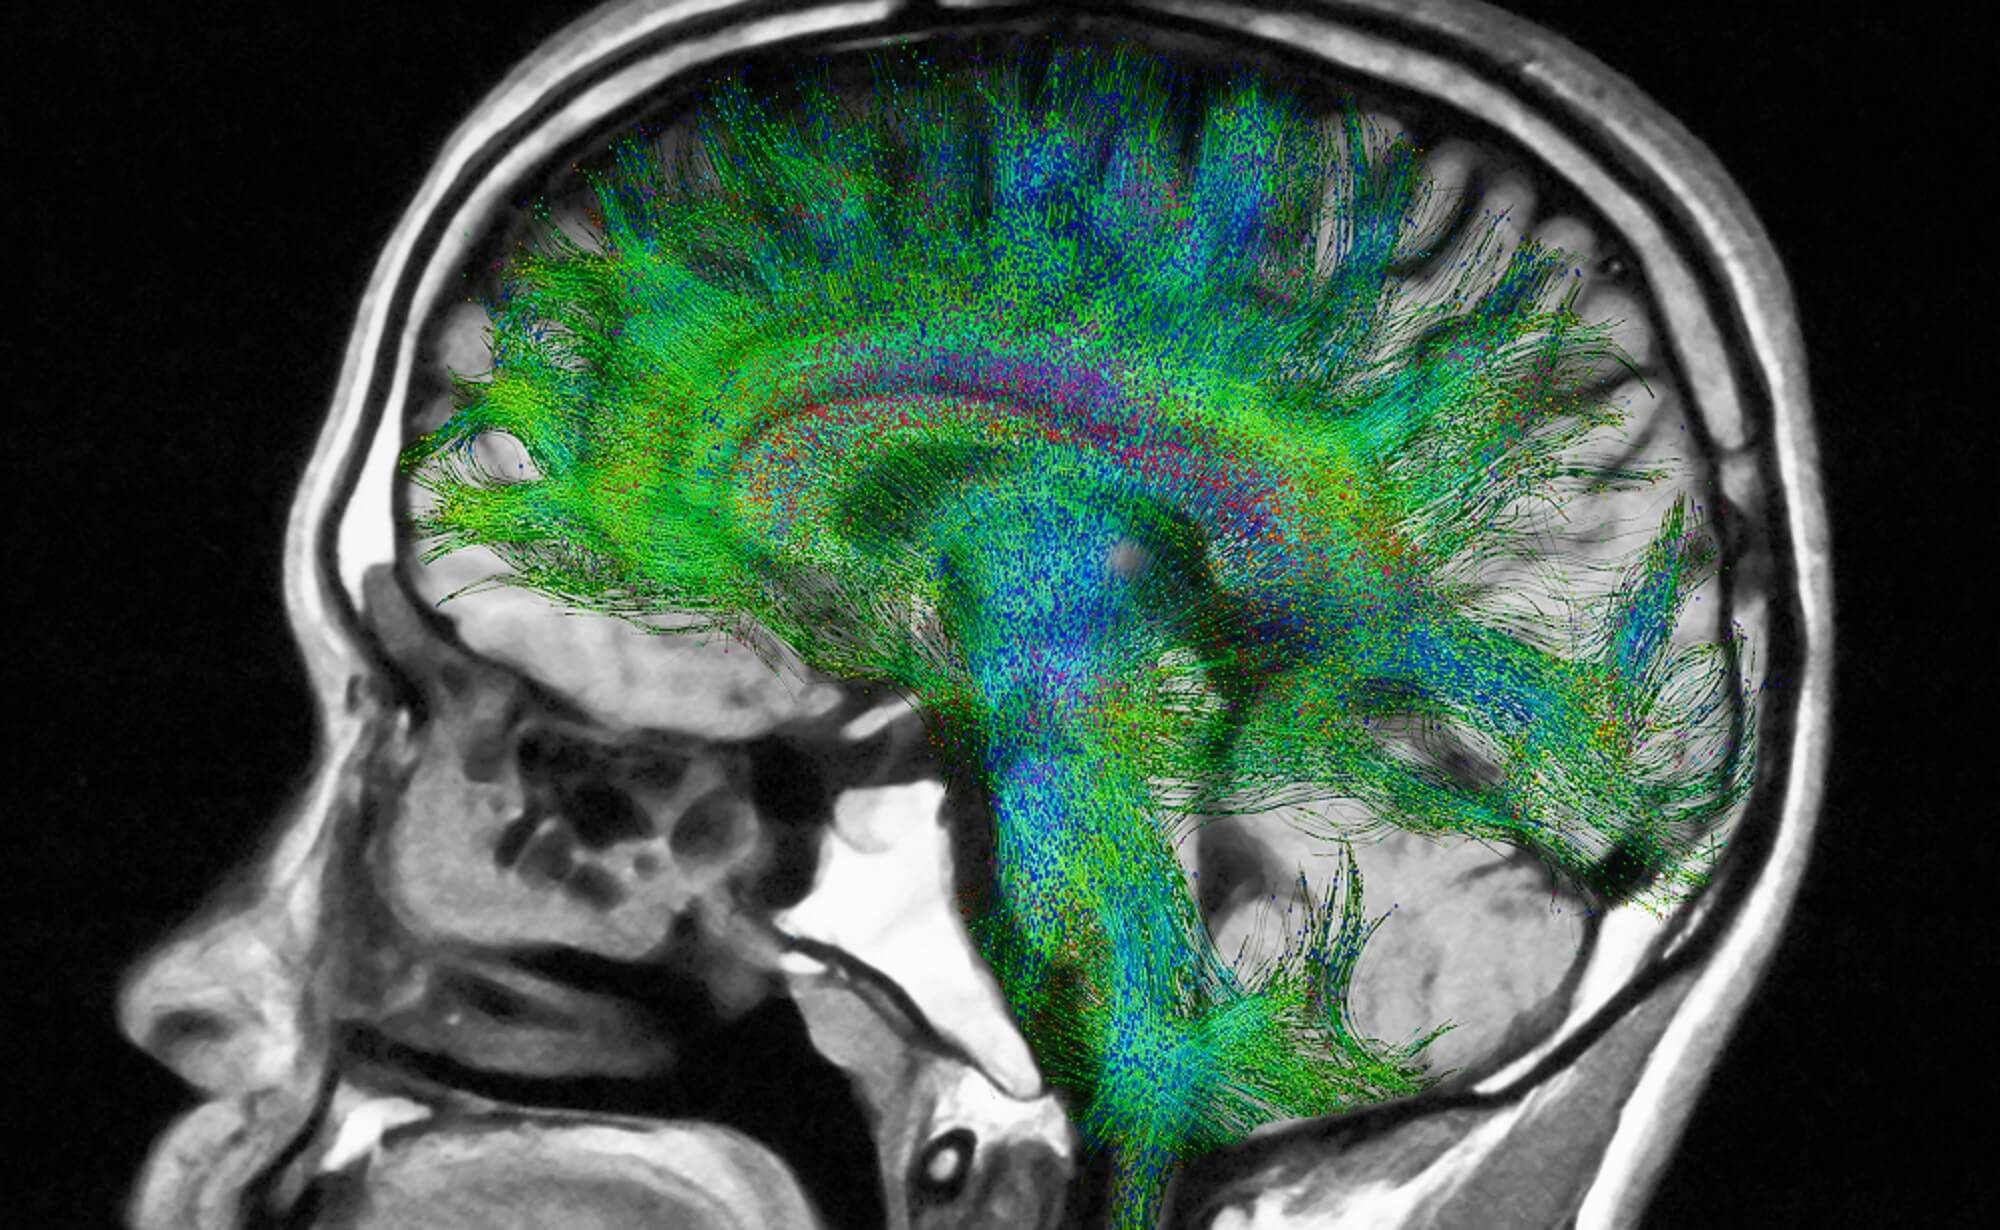 Can imaging genetics analysis identify depression in Parkinson's